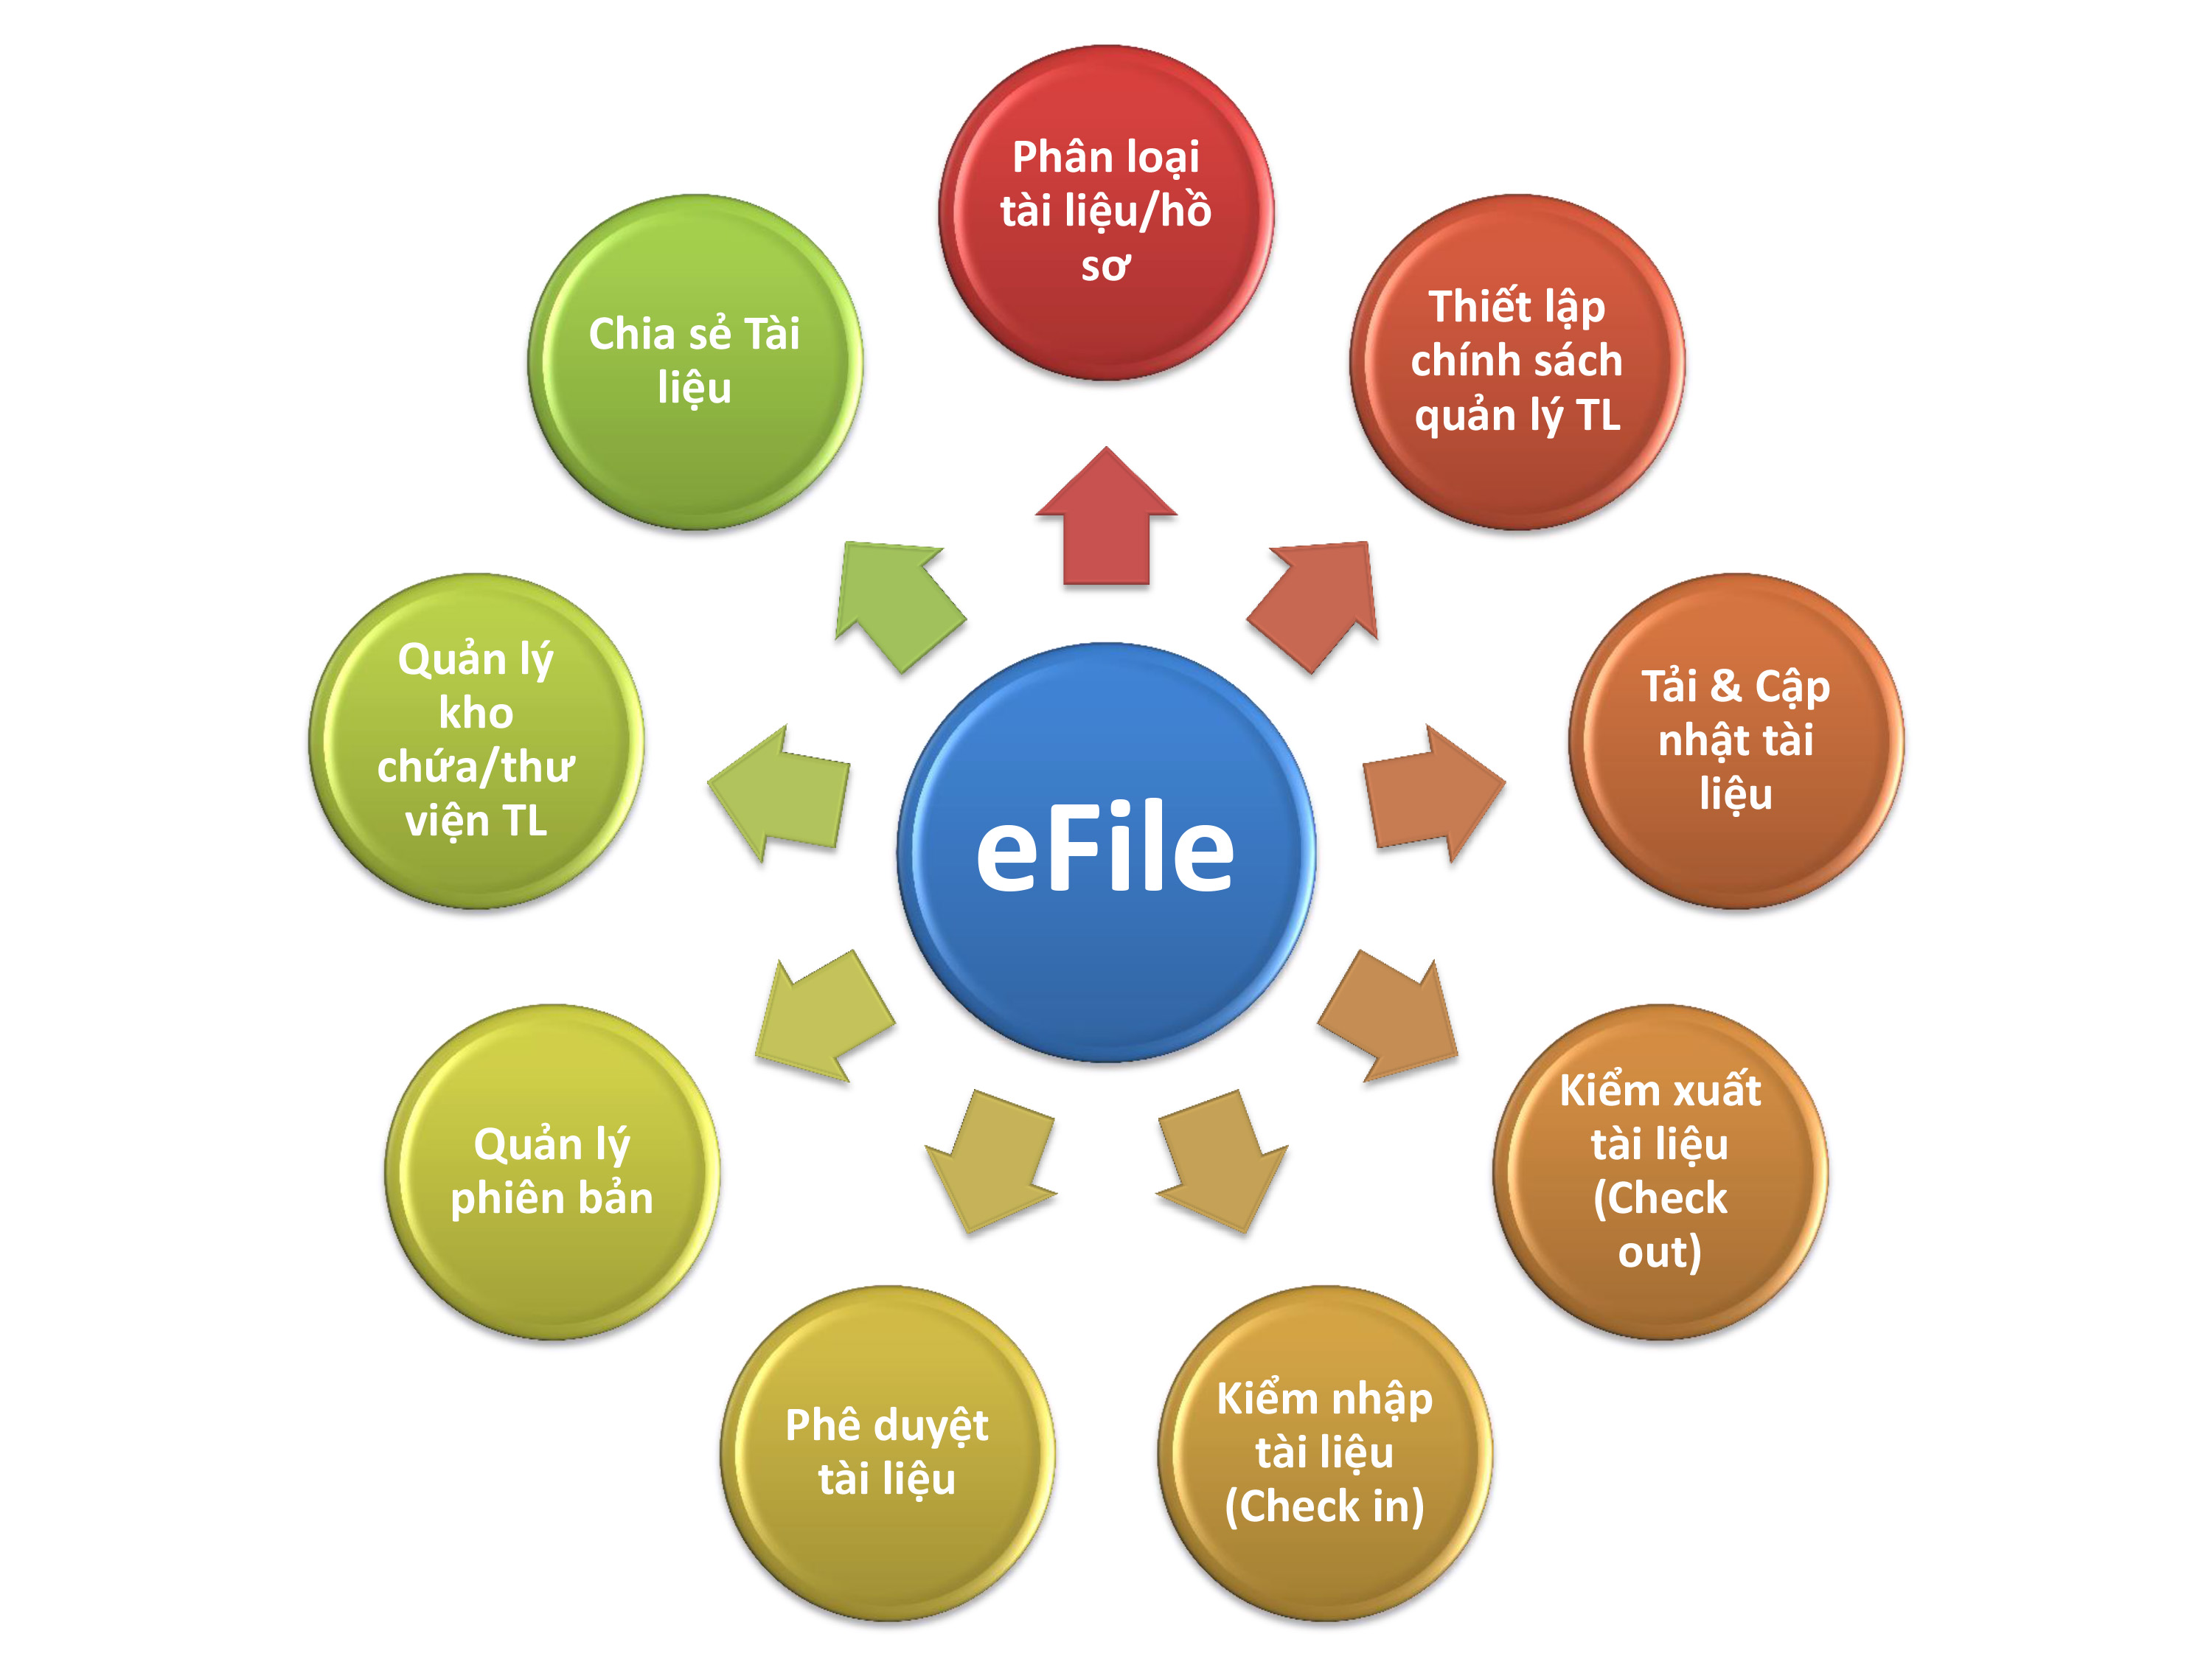 File management system - eFile